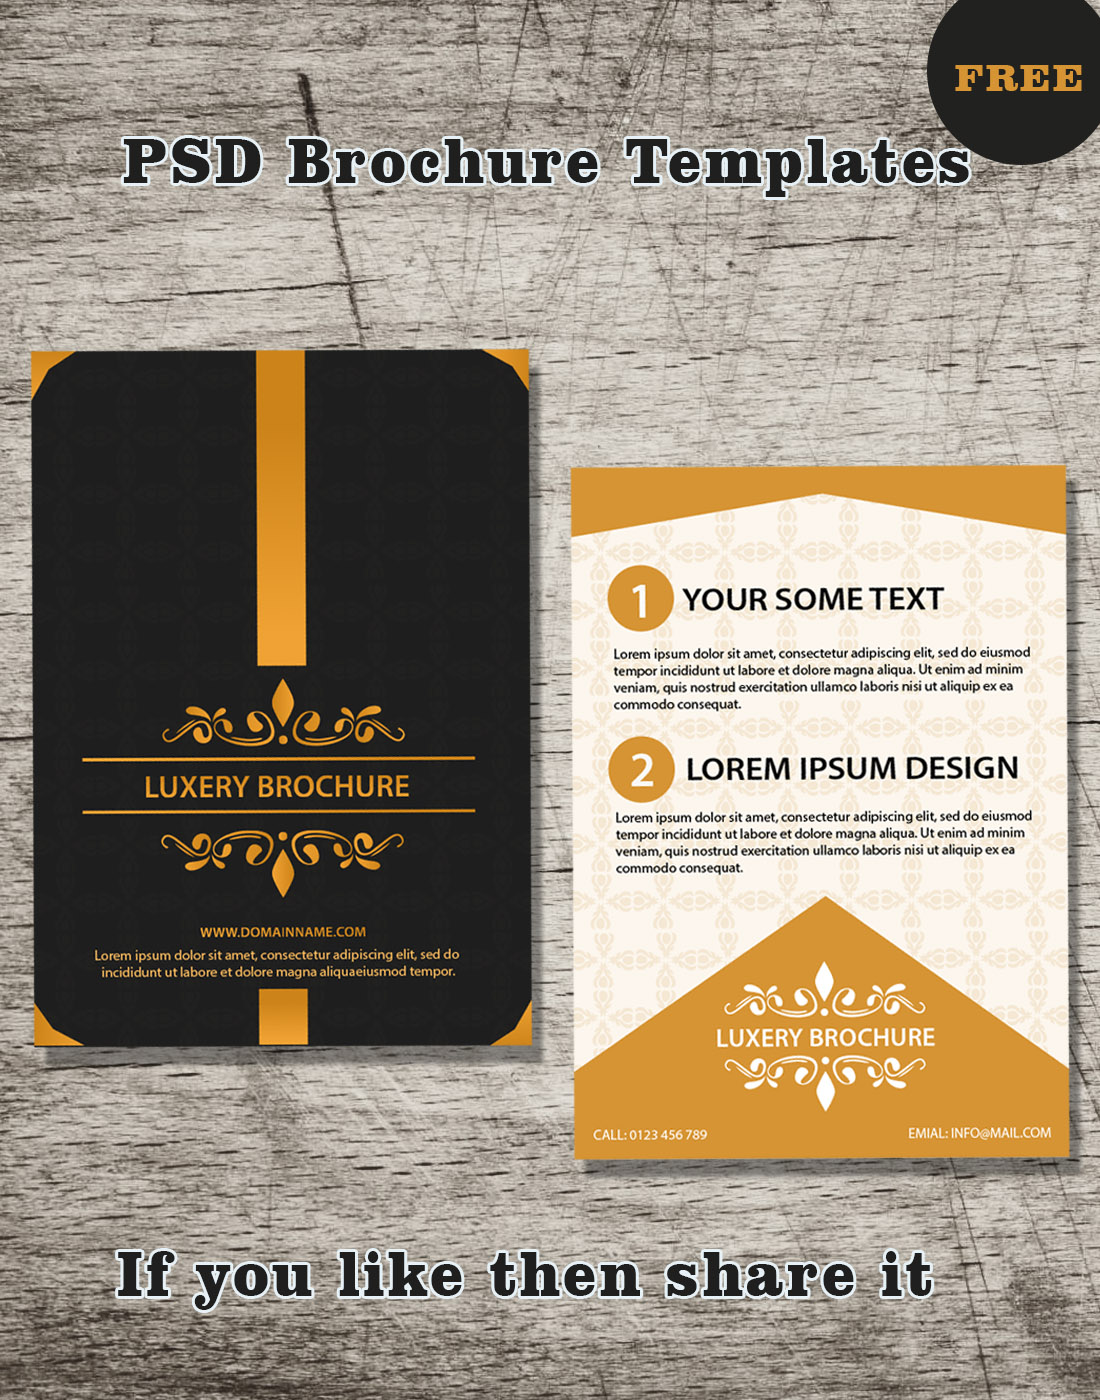 psd brochure templates